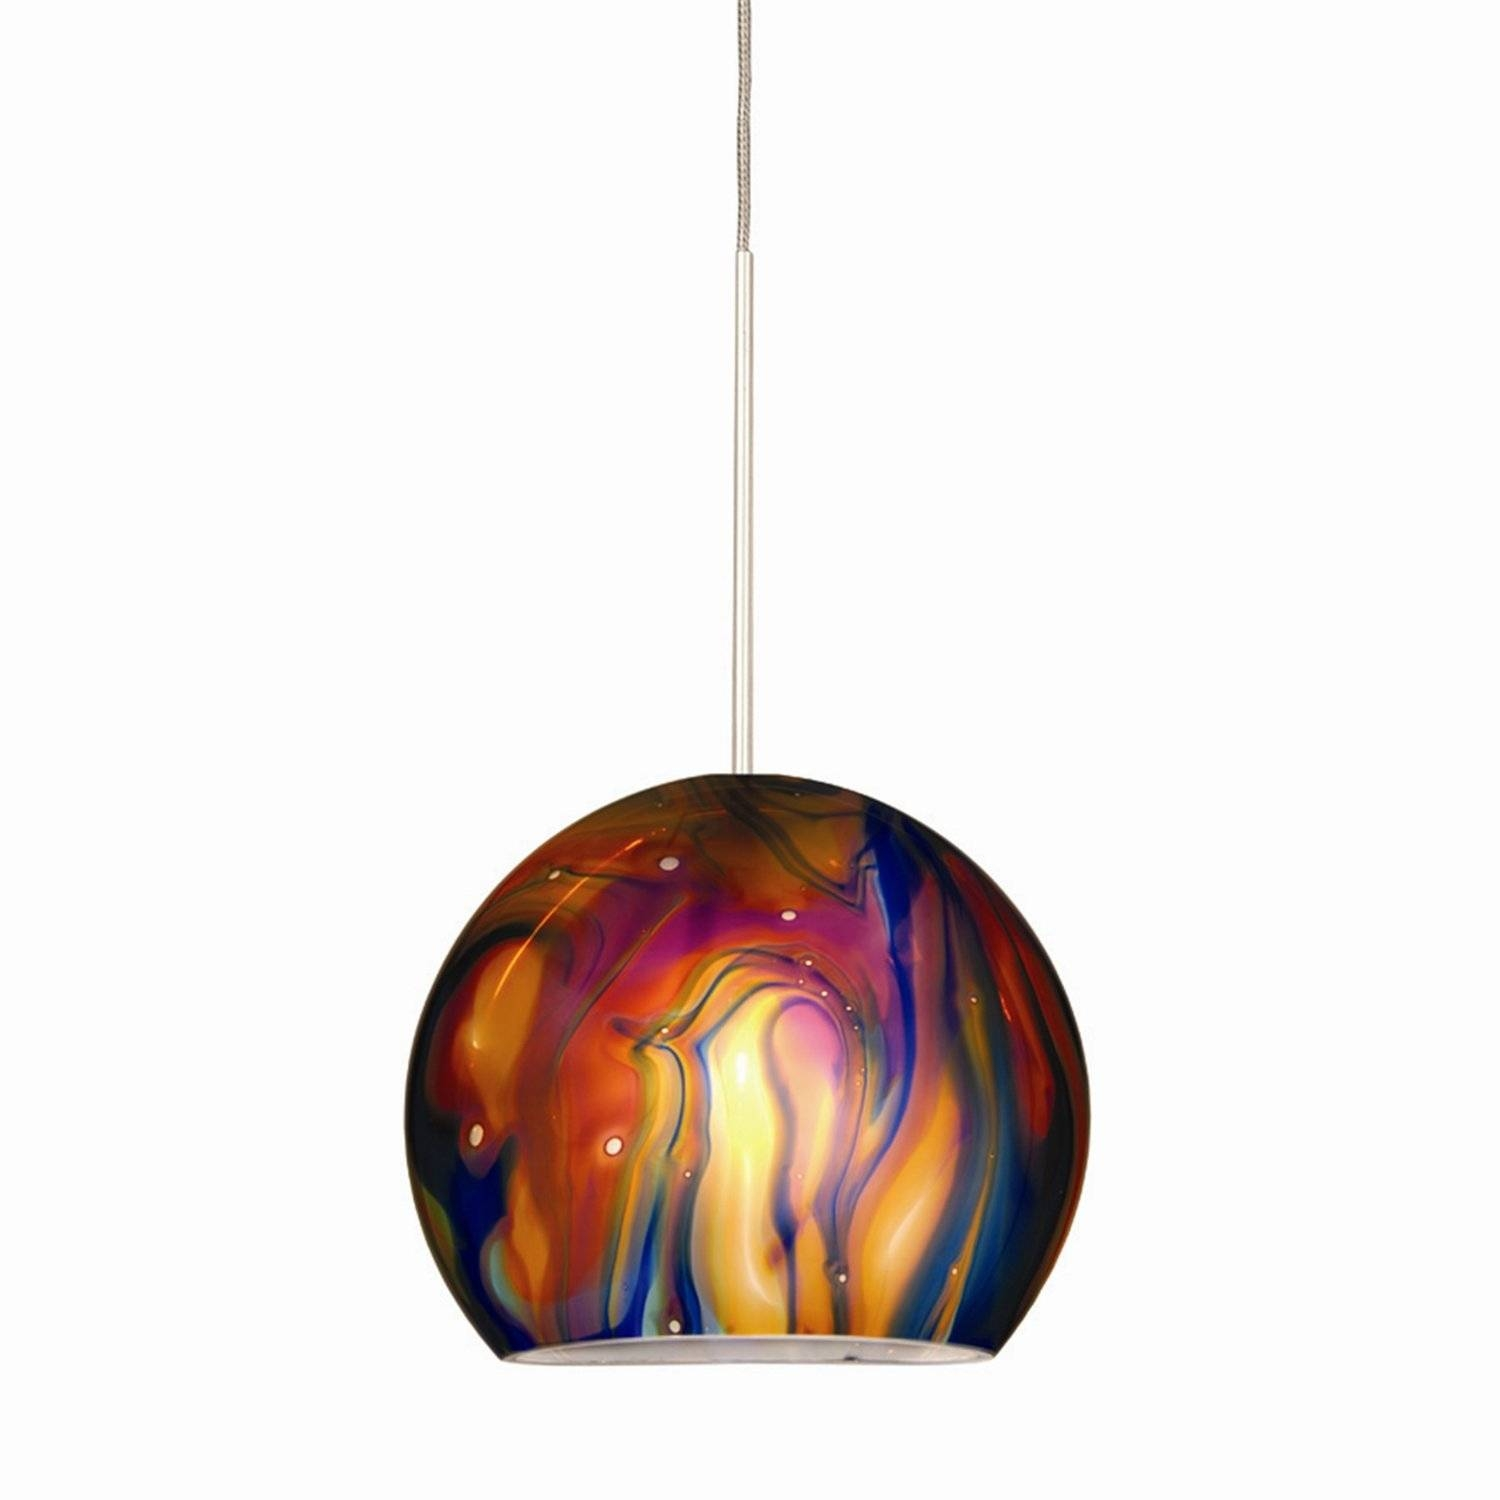 Art Glass Pendant Lights - Baby-Exit with regard to Art Glass Mini Pendants (Image 2 of 15)